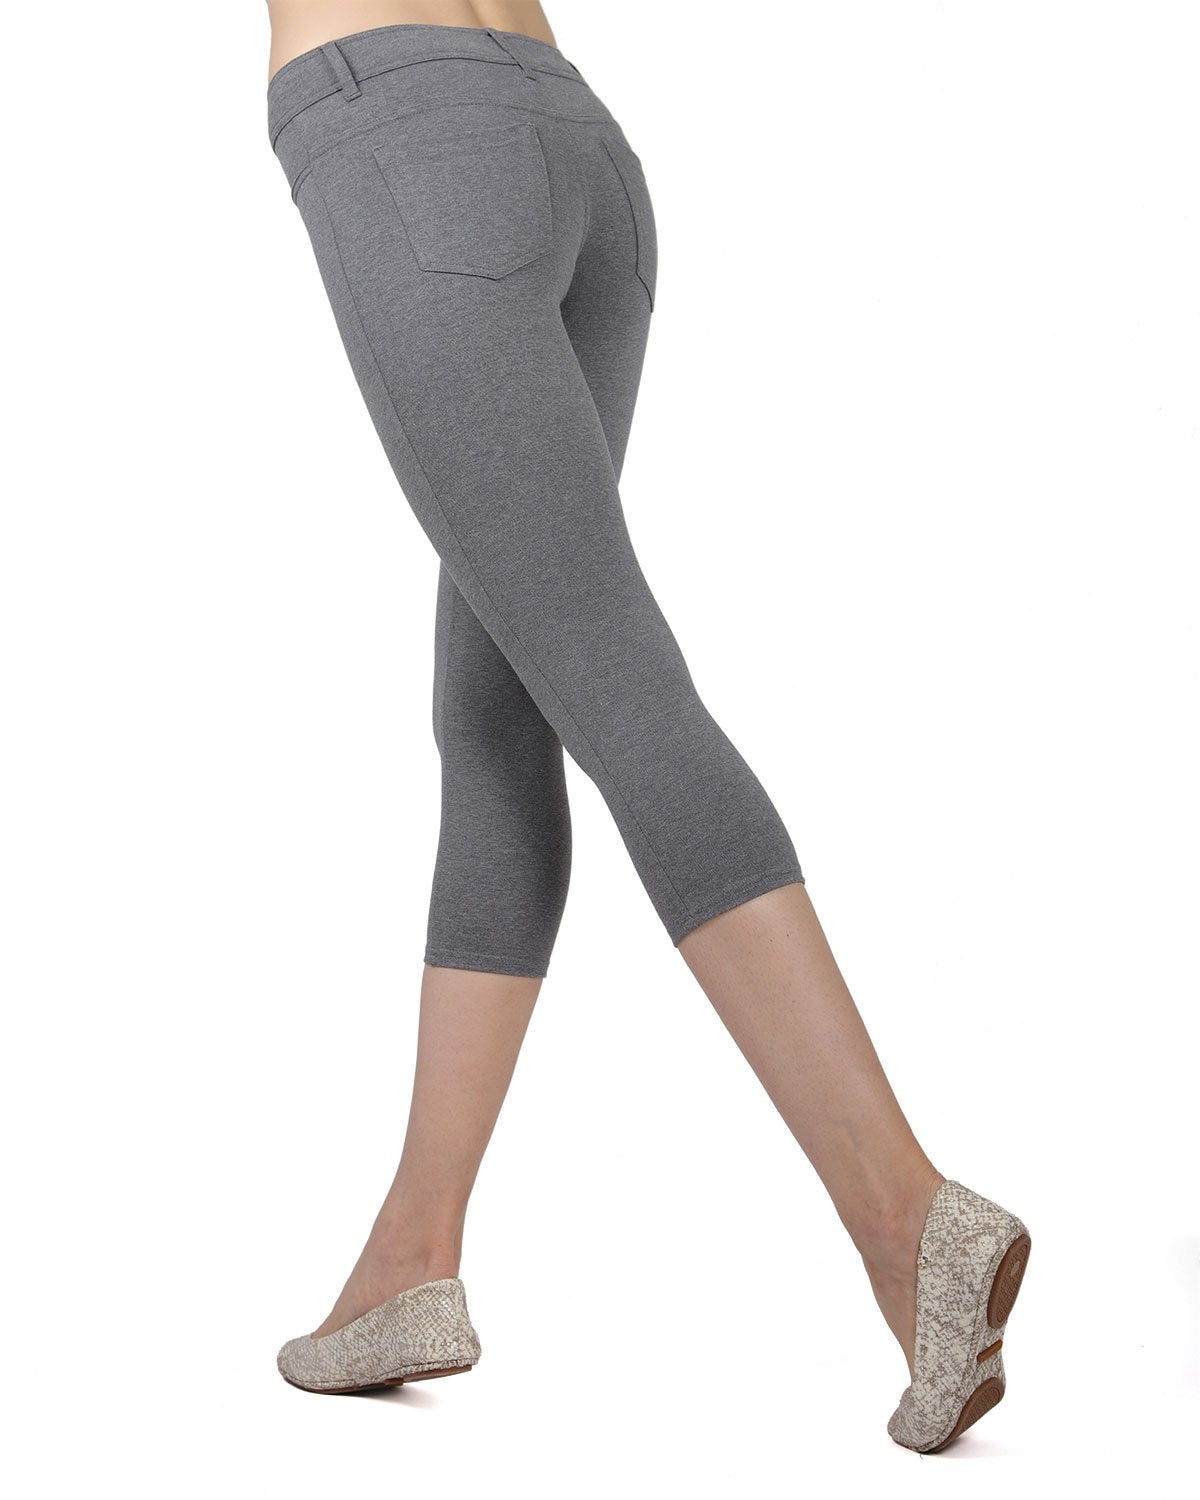 -MQ-064 Med Gray Heather- -2